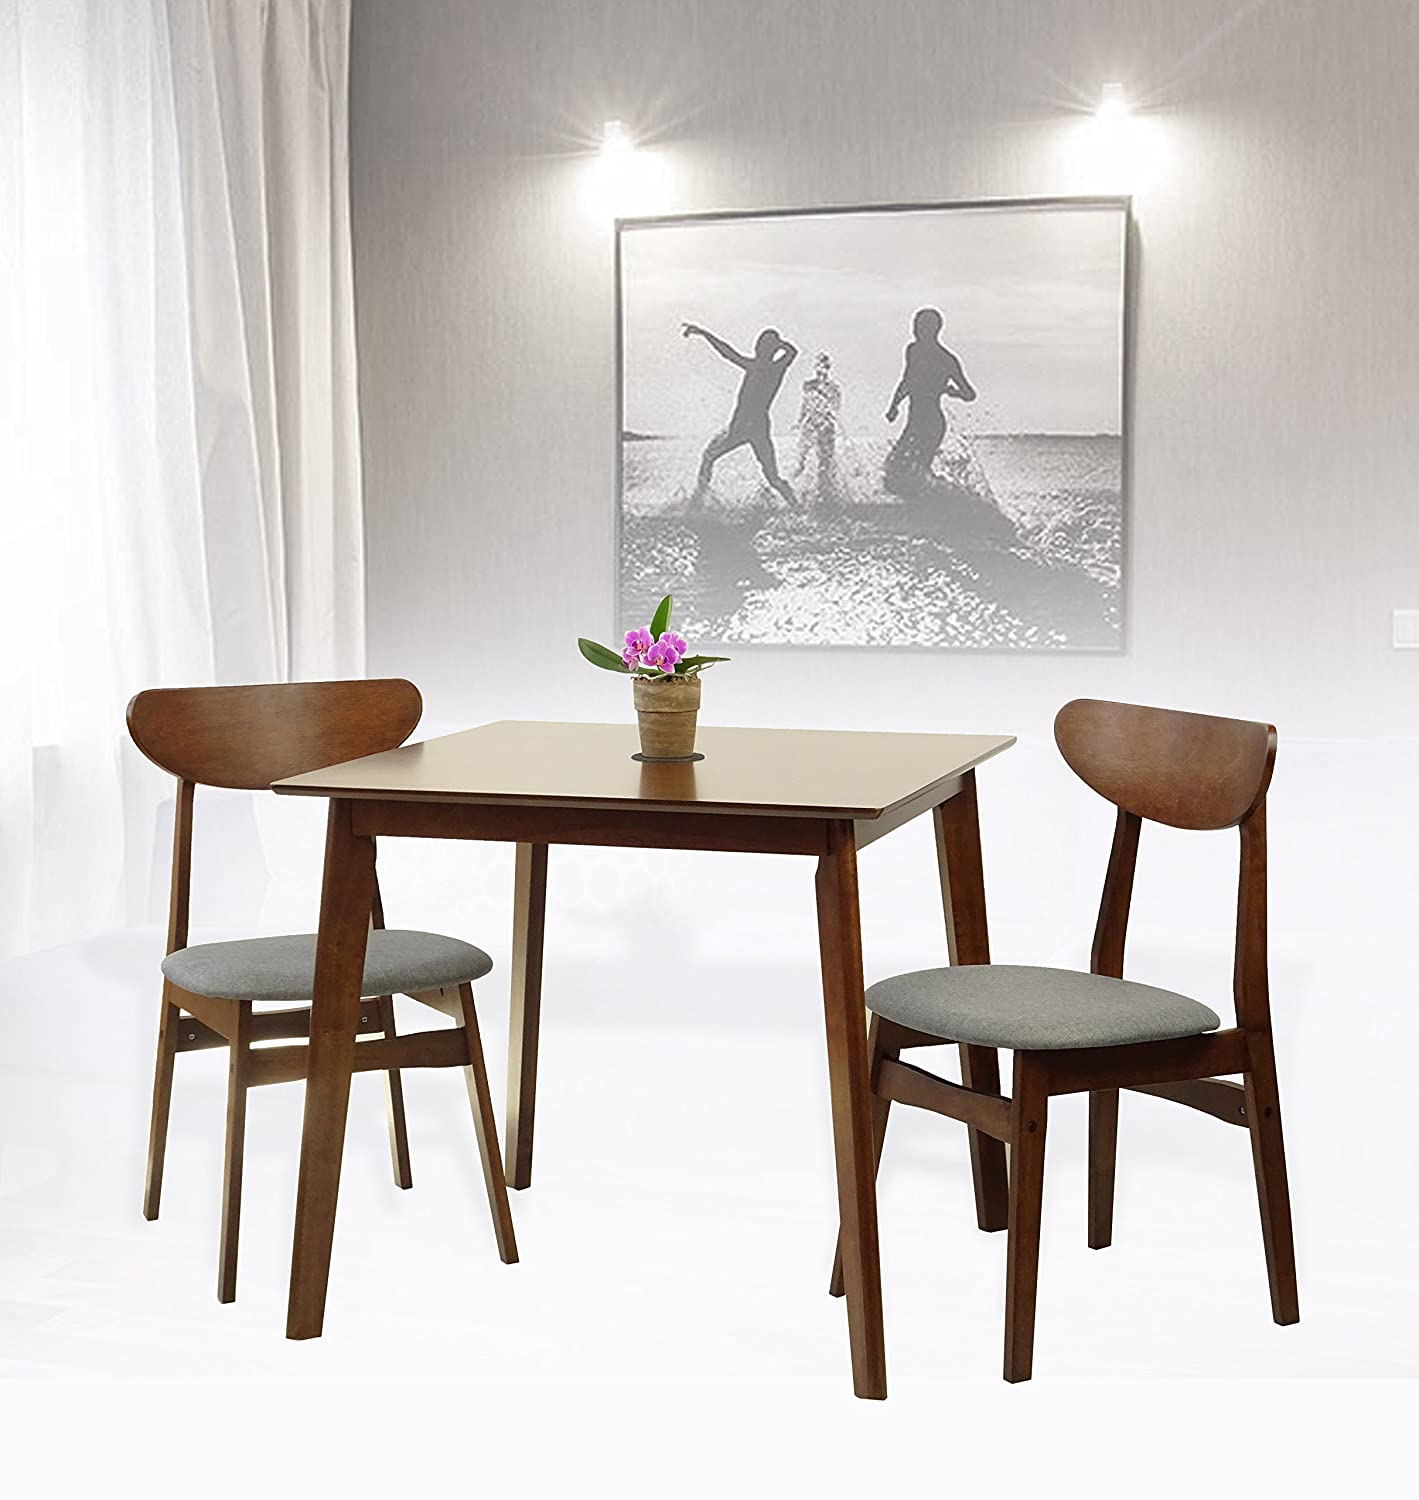 Rattan Wicker Furniture Set of 3 Dining Kitchen Square Table and 2 Yumiko Side Chairs Solid Wood w/Padded Seat Medium Brown Finish